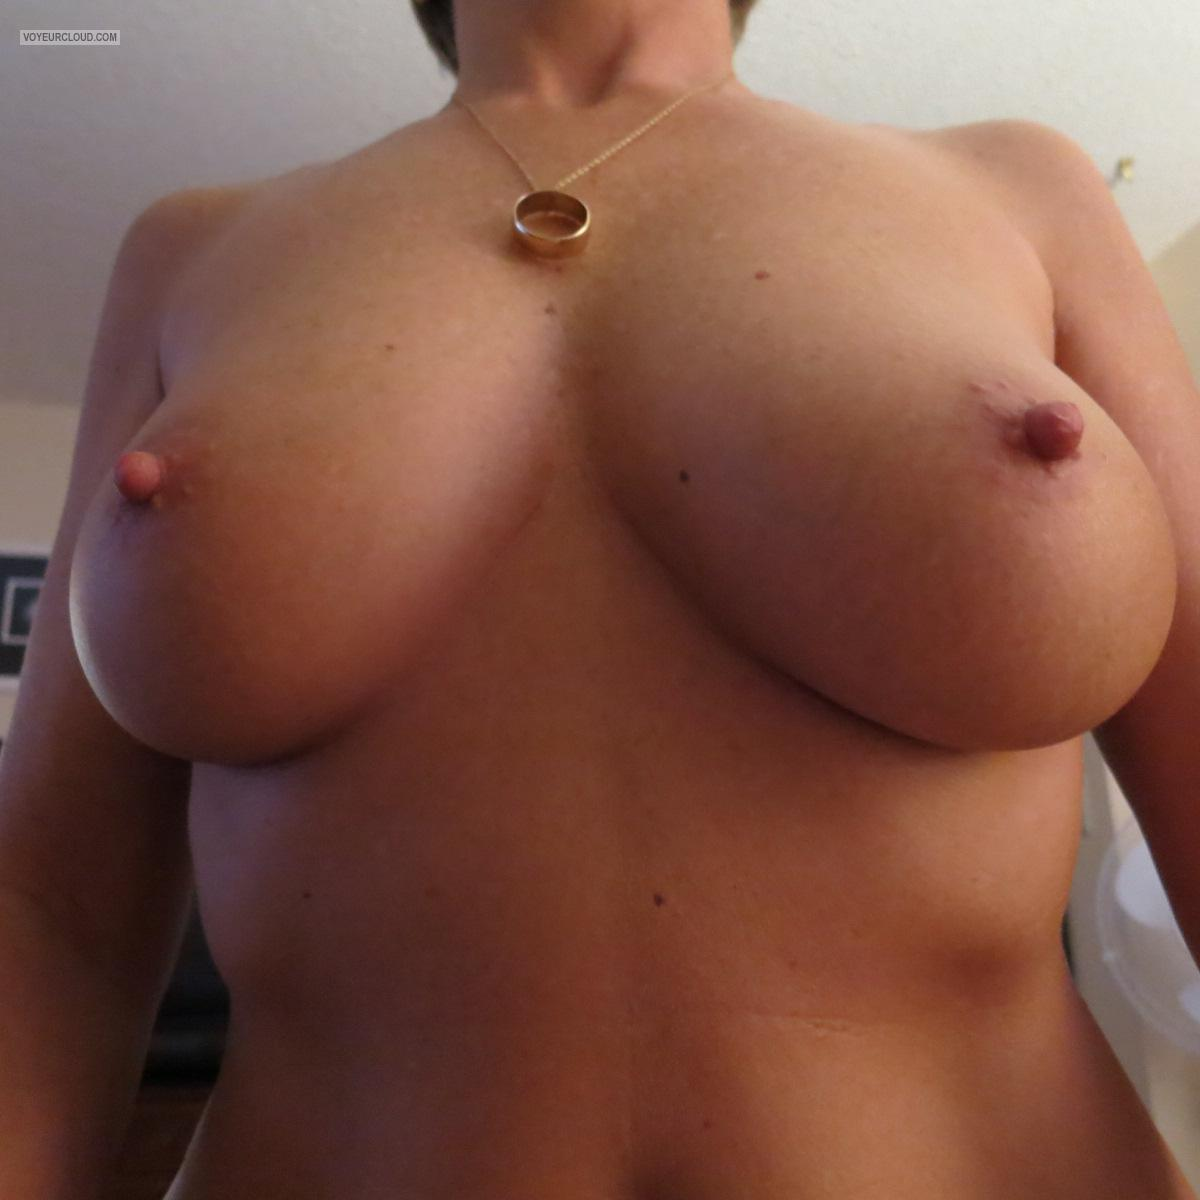 Pictures of my wifes tits